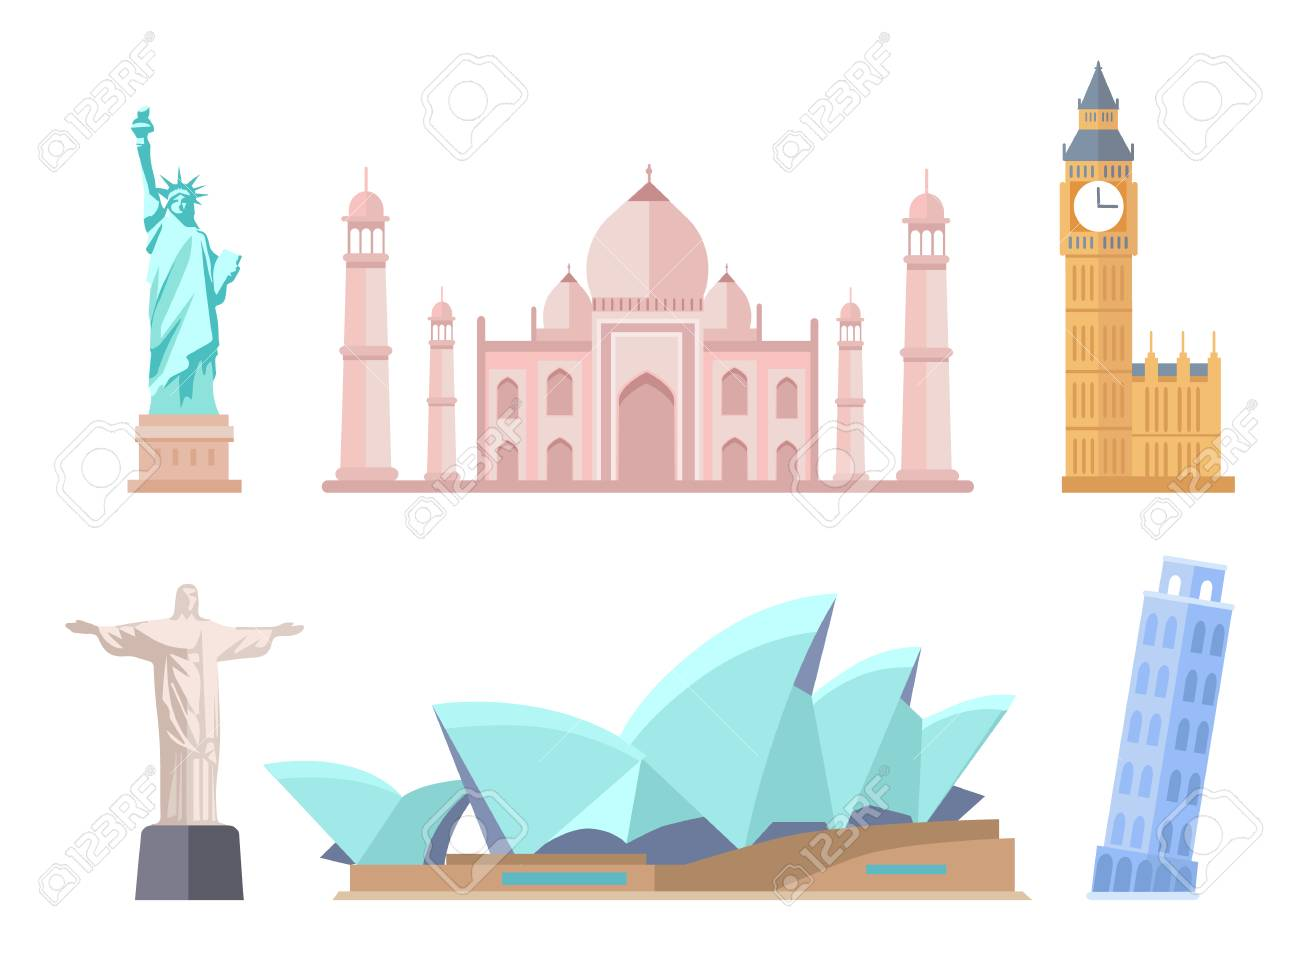 World Famous Sights of Modern and Old Styles Set - 106315661